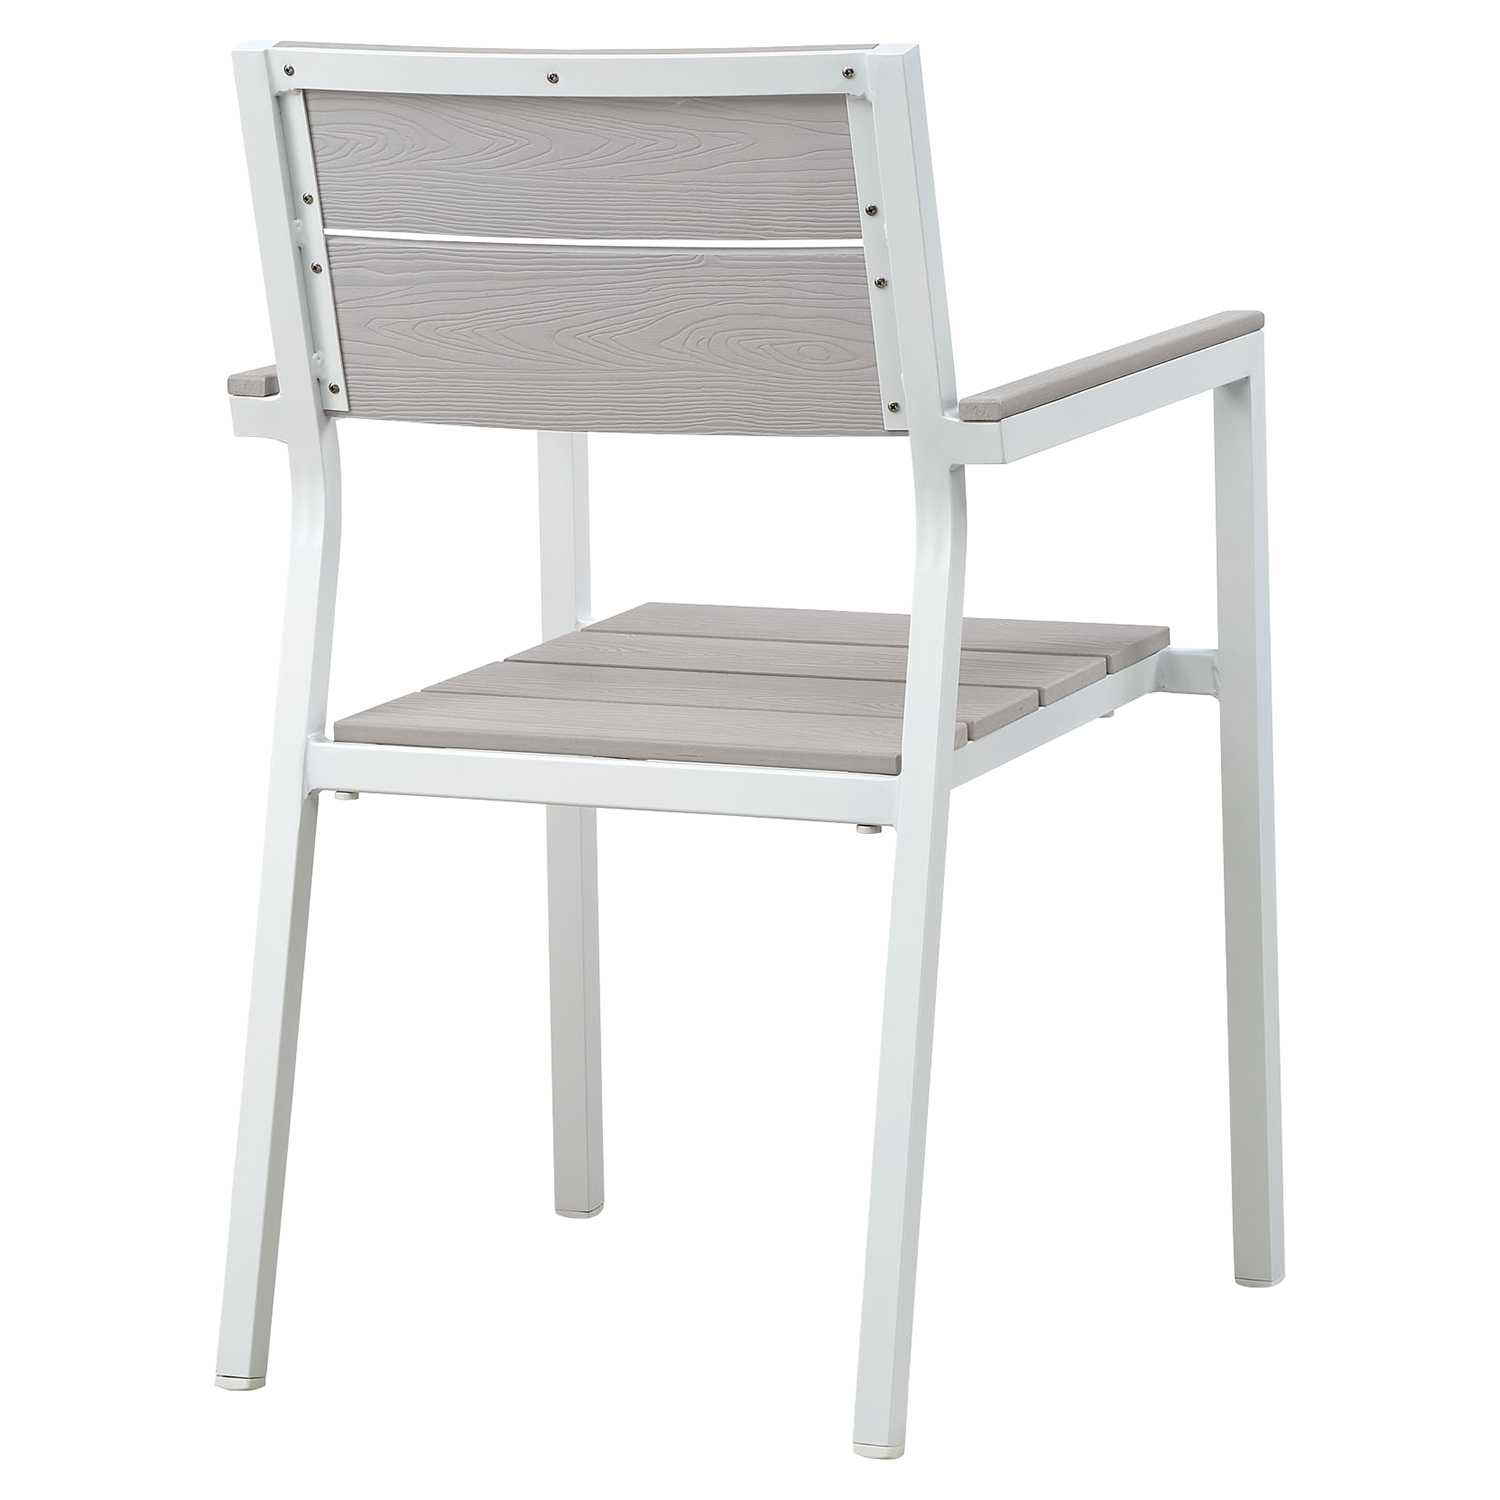 "Maine 5 Pieces 63"" Outdoor Patio Set - White, Light Gray - EEI-1747-WHI-LGR-SET"